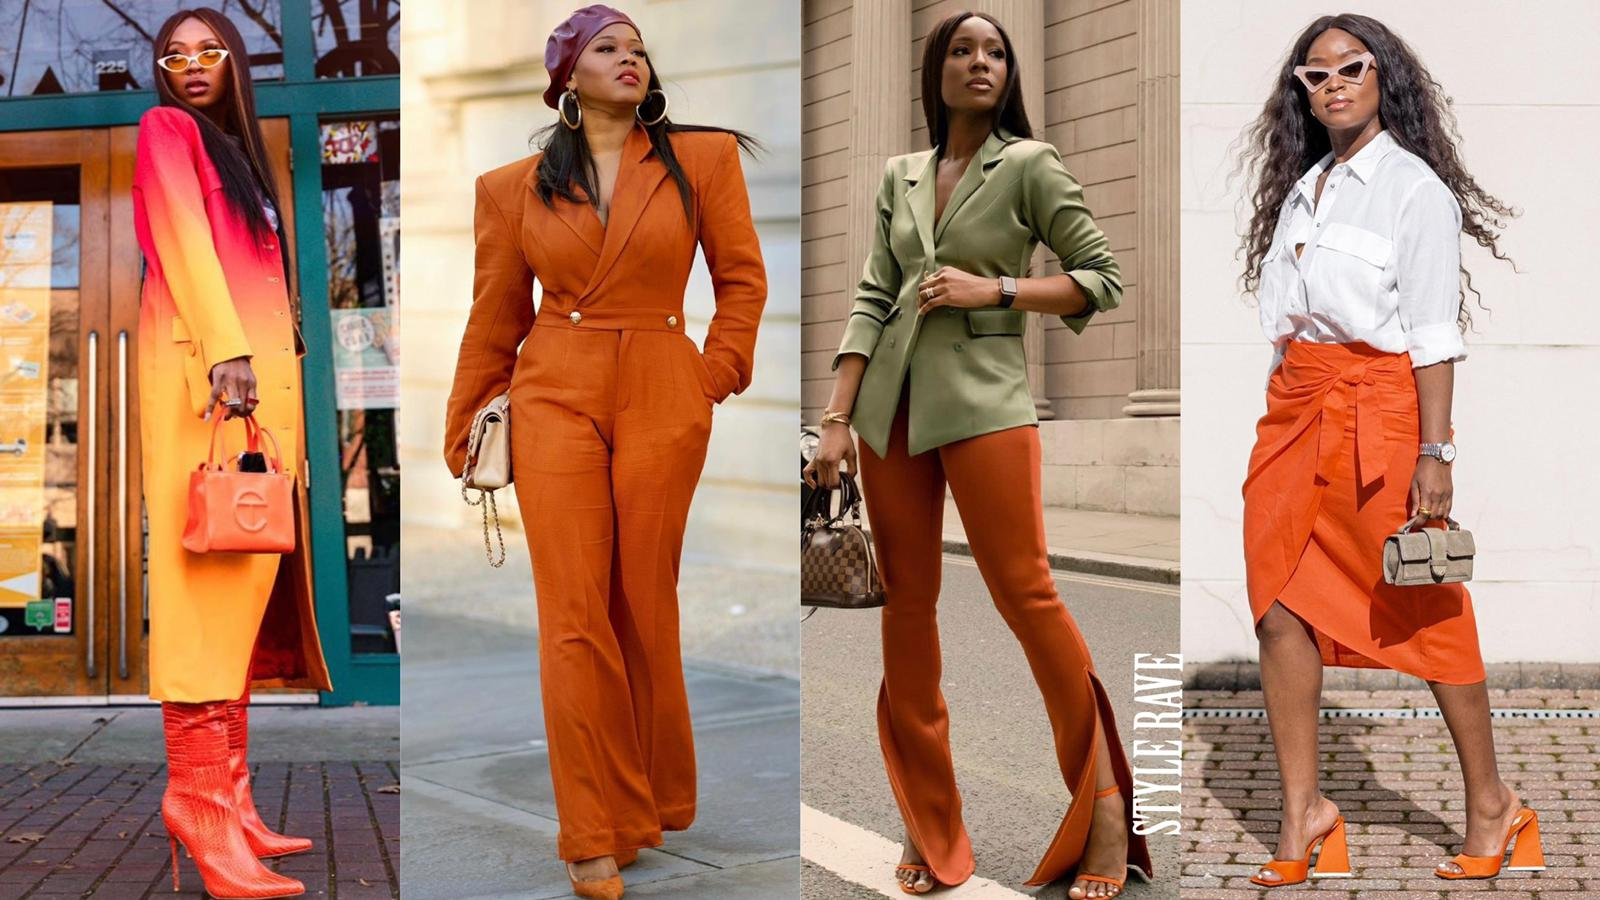 How-to-style-orange-outfits-fall-spring-summer-winter